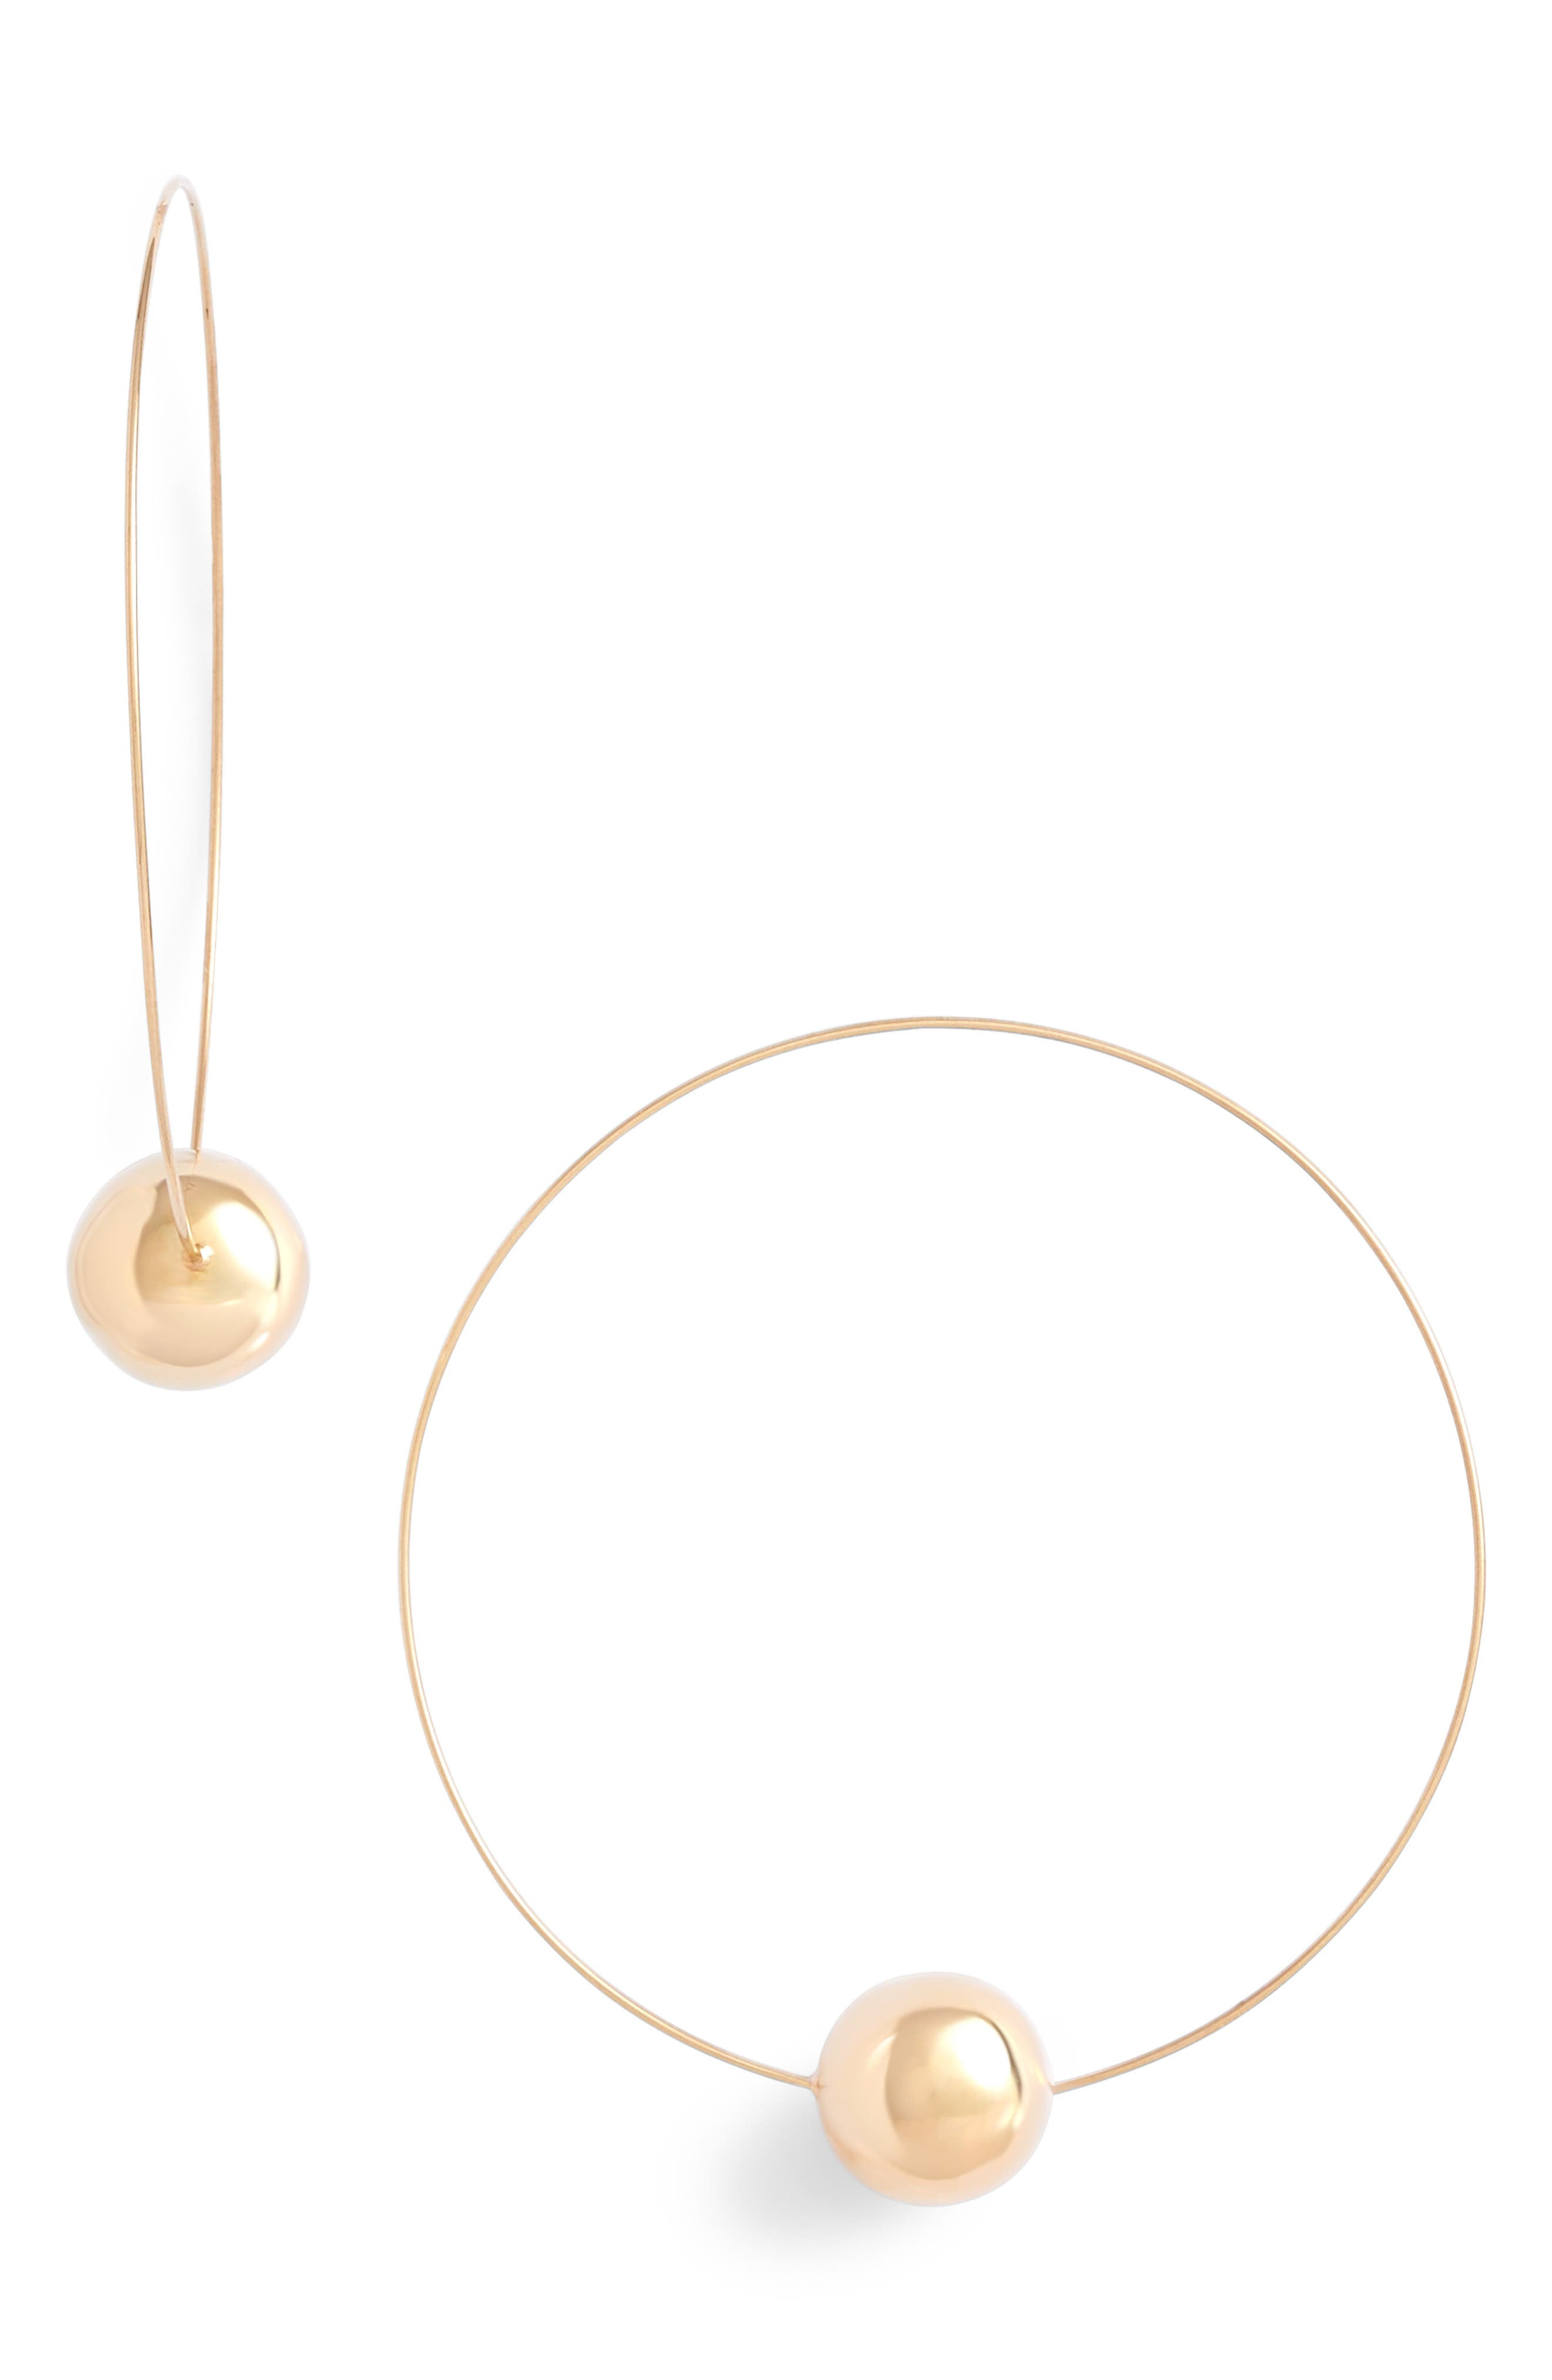 LANA JEWELRY,                             Lana Hollow Ball Magic Wire Continuous Hoop Earrings,                             Main thumbnail 1, color,                             GOLD